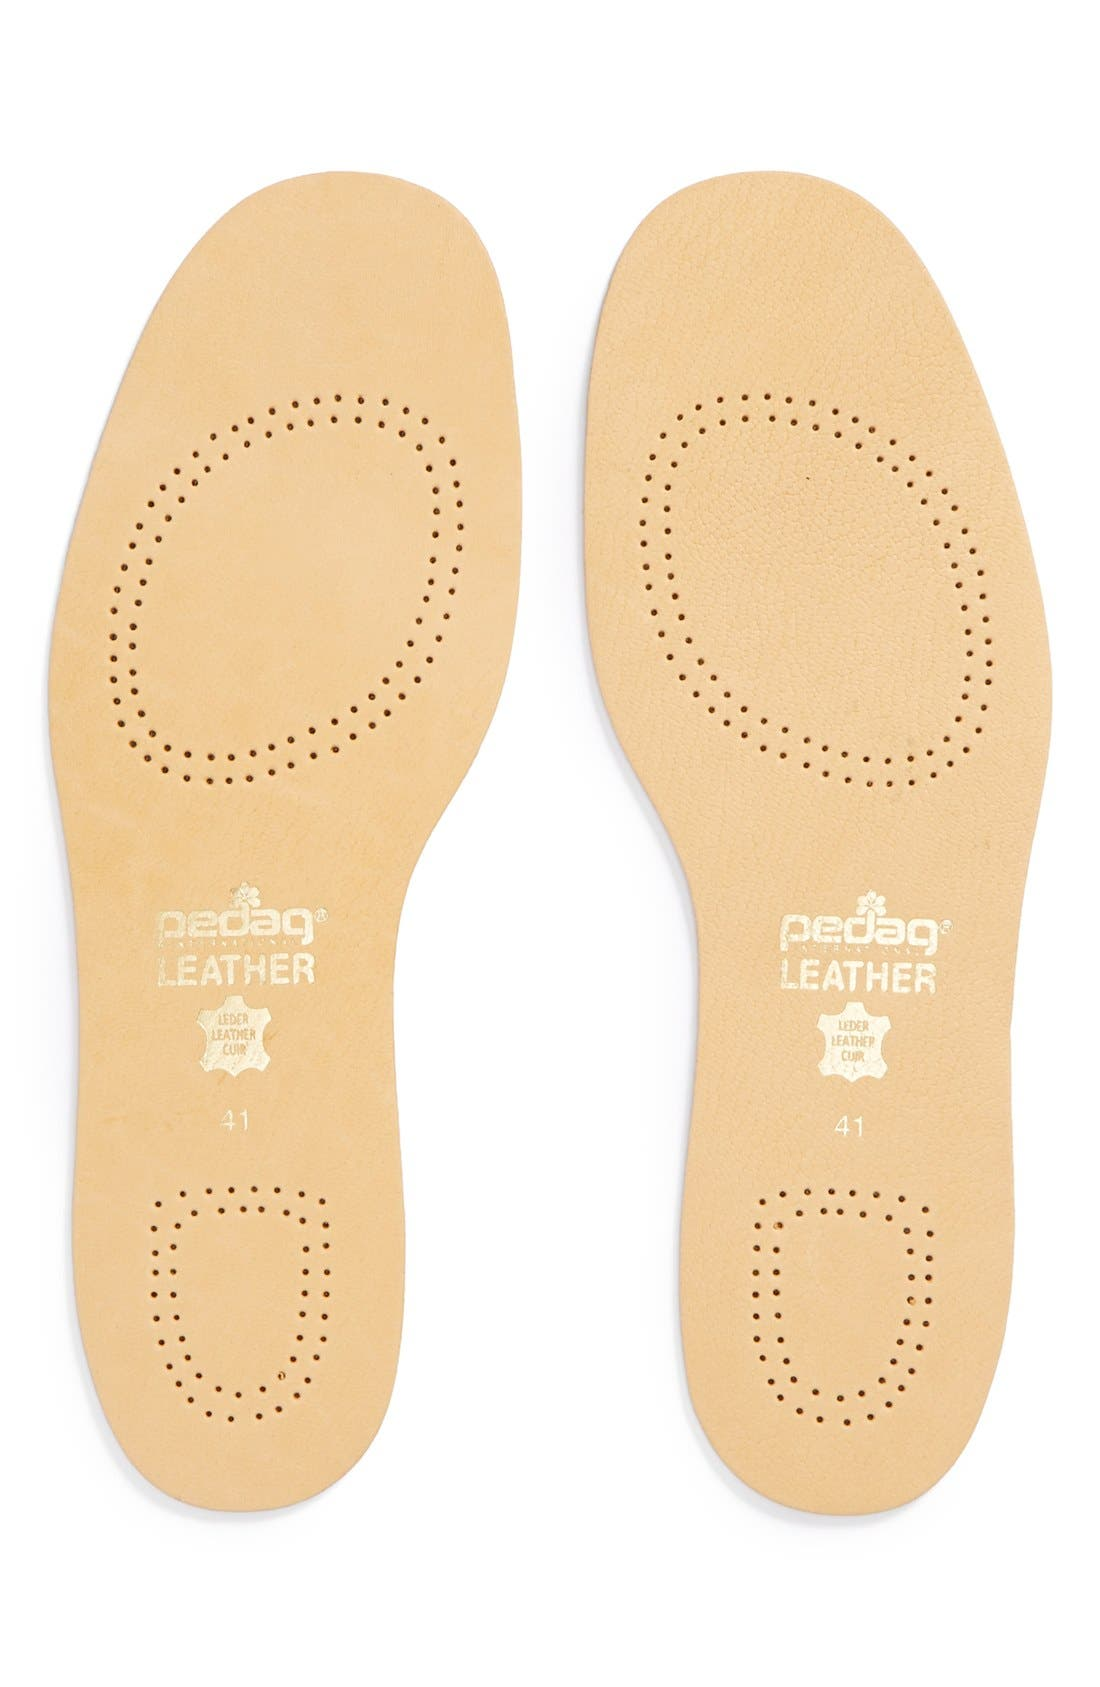 Leather Insole,                         Main,                         color, Tan